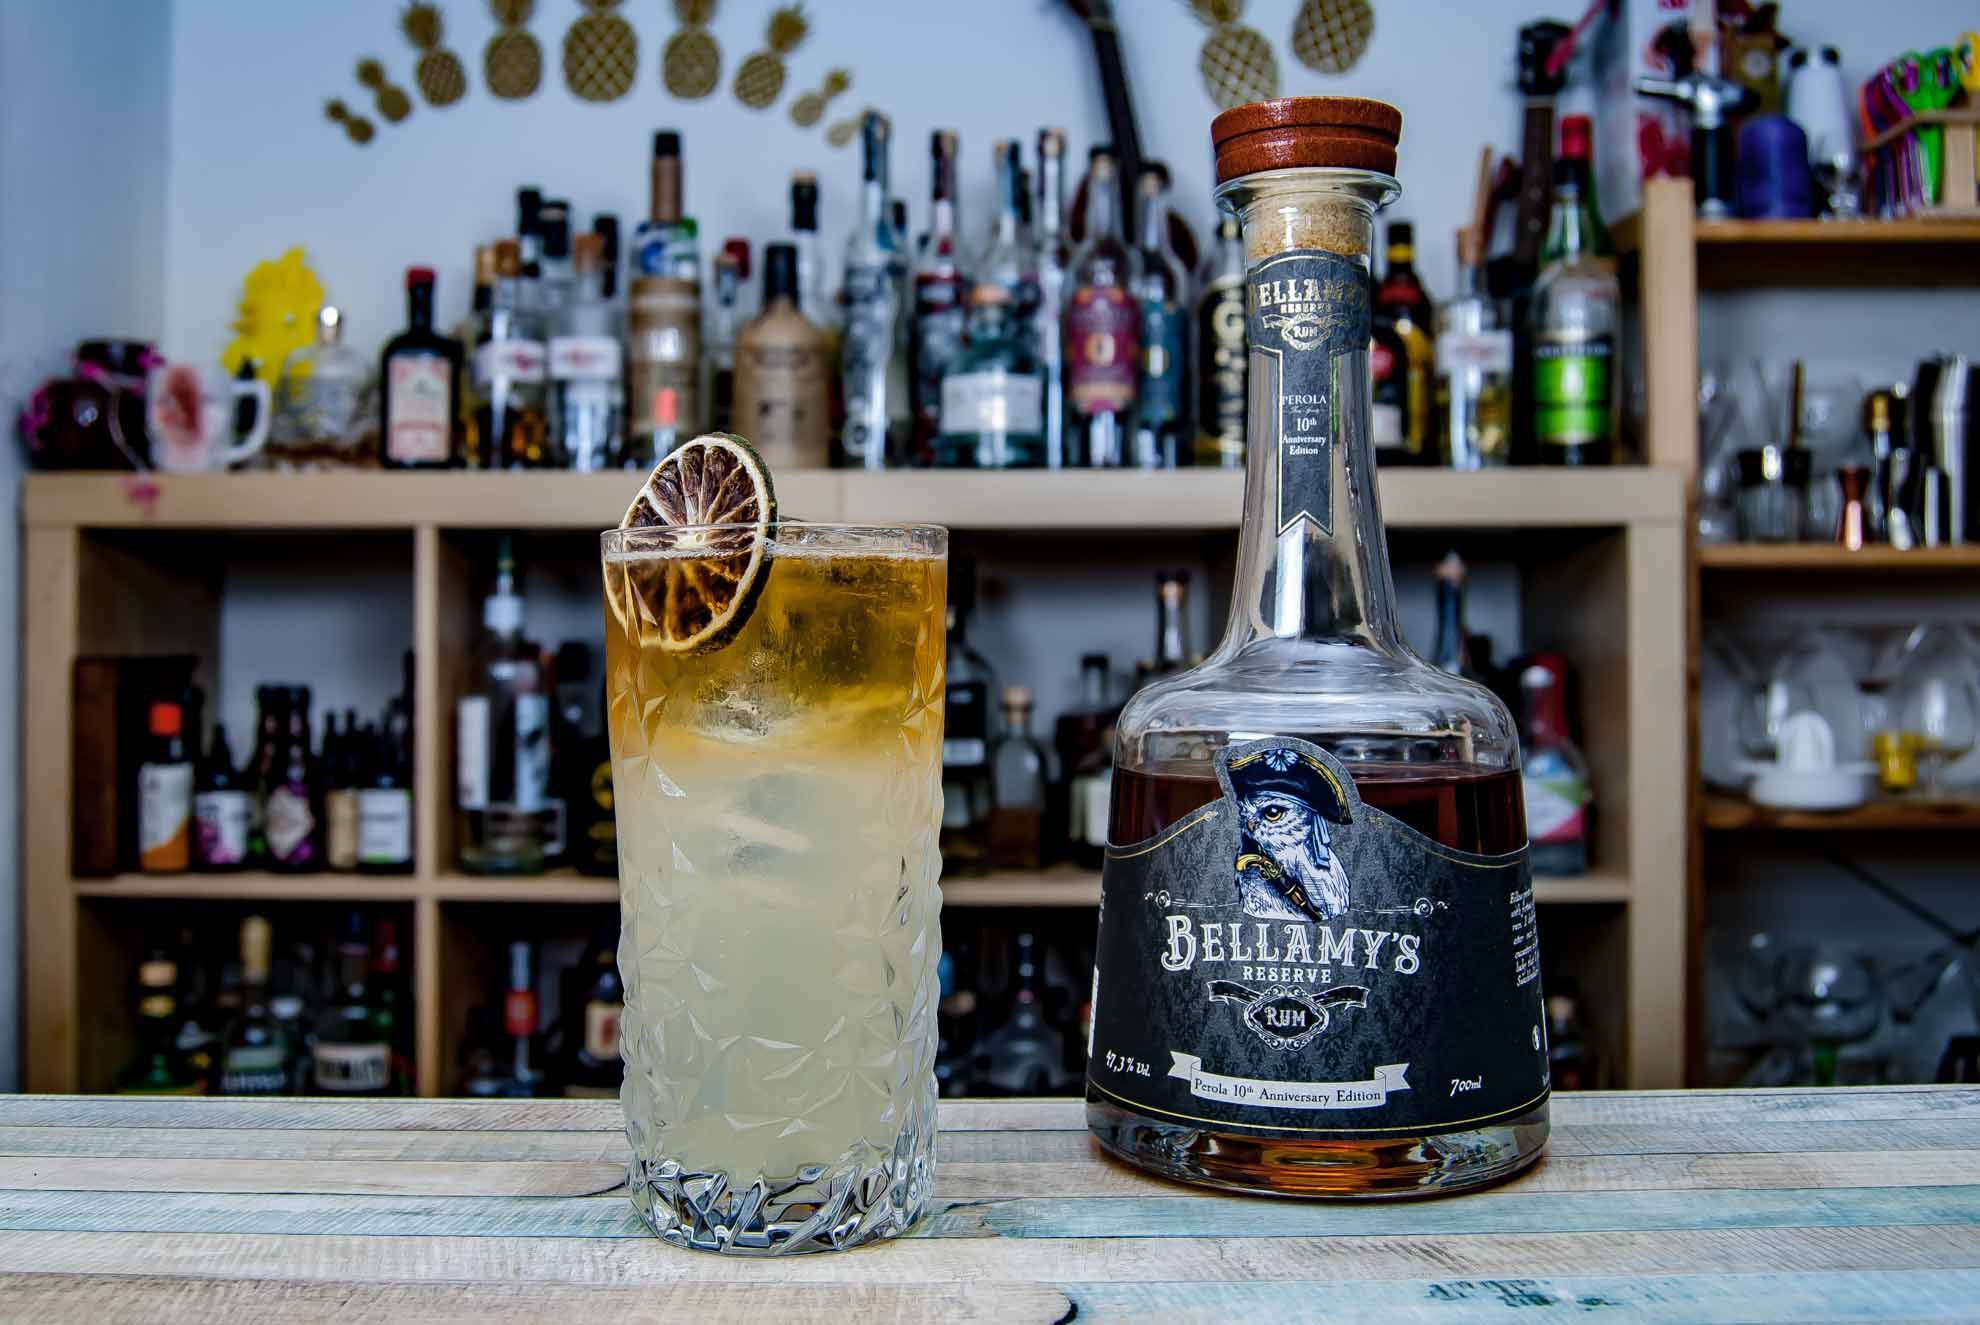 Bellamy's Reserve Rum Perola 10th Anniversary Edition in einem Drink nach Art eines Dark & Stormy.